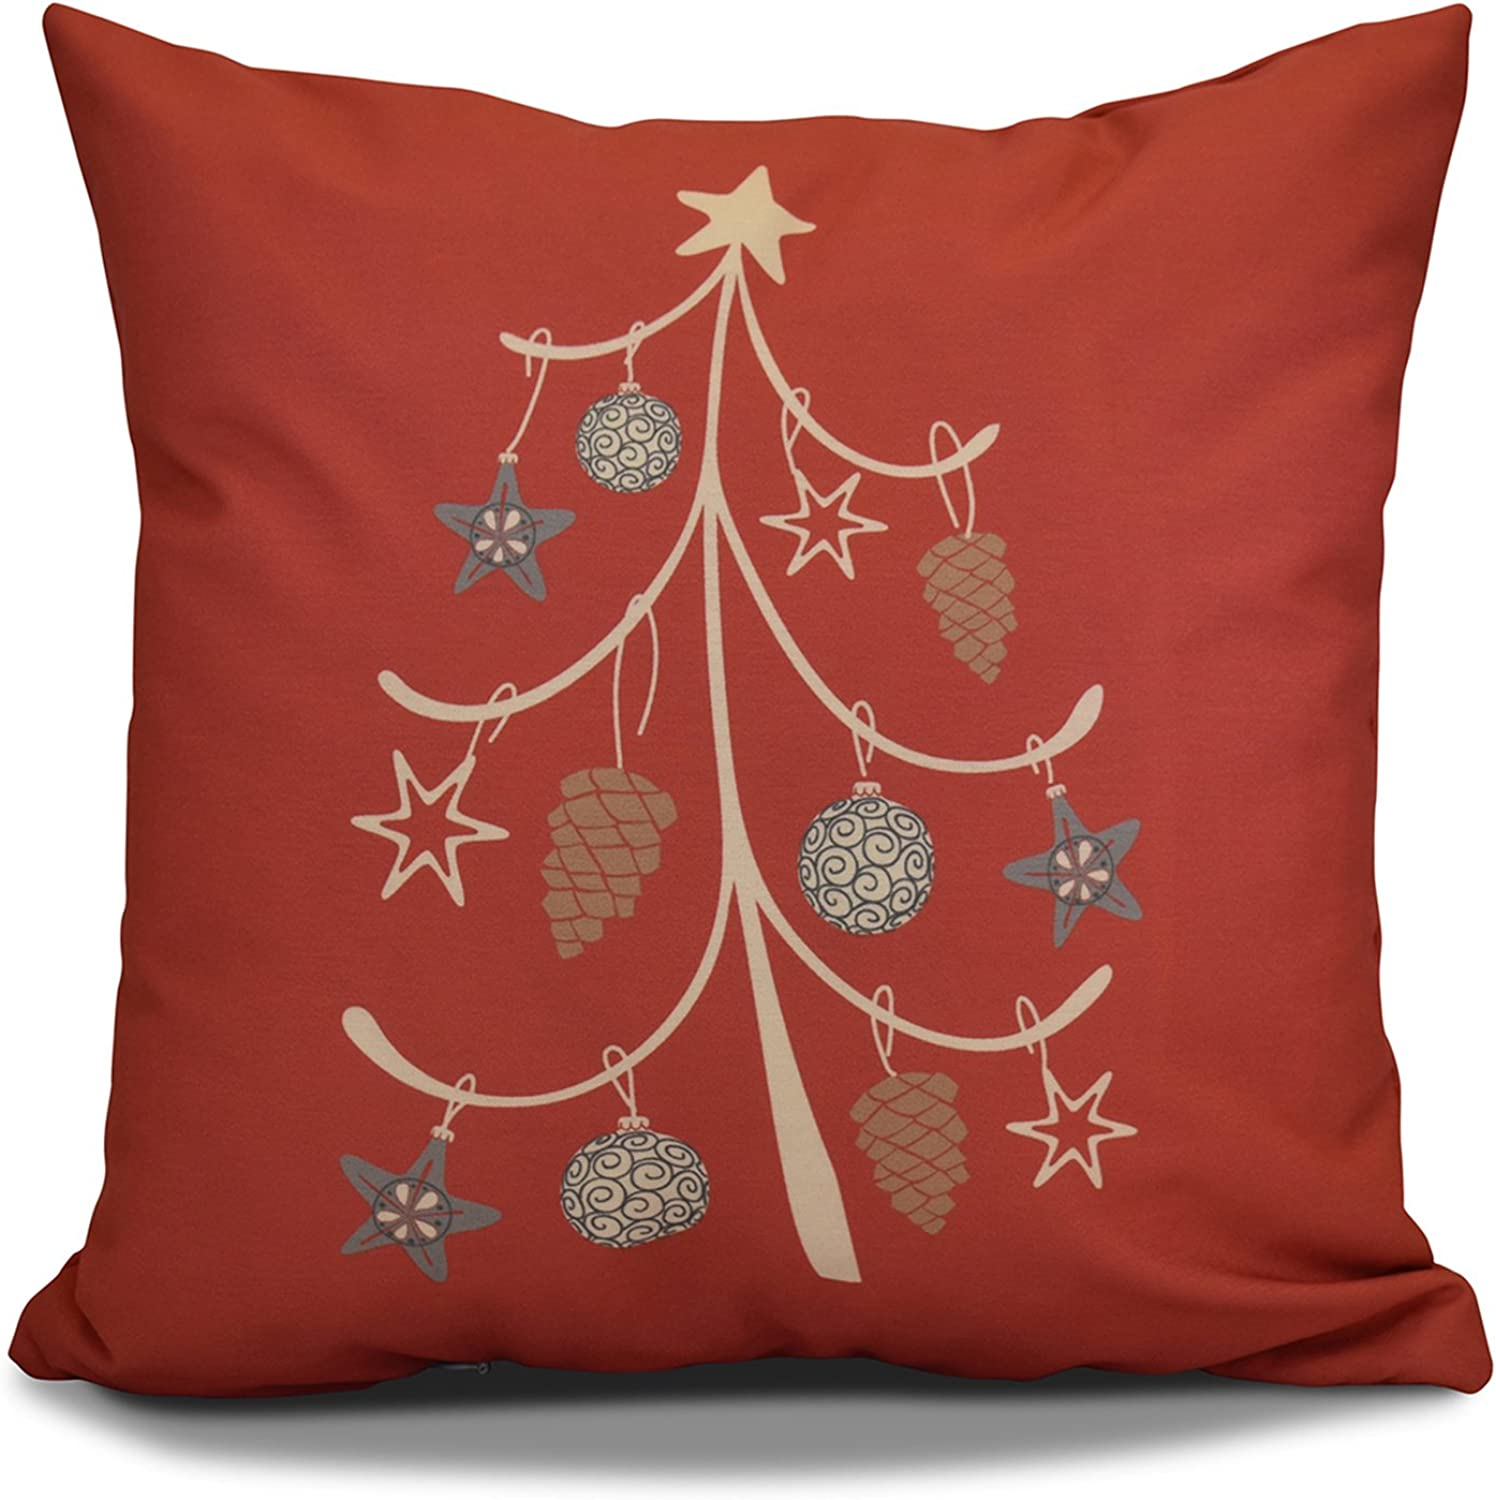 E by design PHGN651OR1516 16 x 16 inch, Decorative Holiday Pillow, Geometric Print, Coral